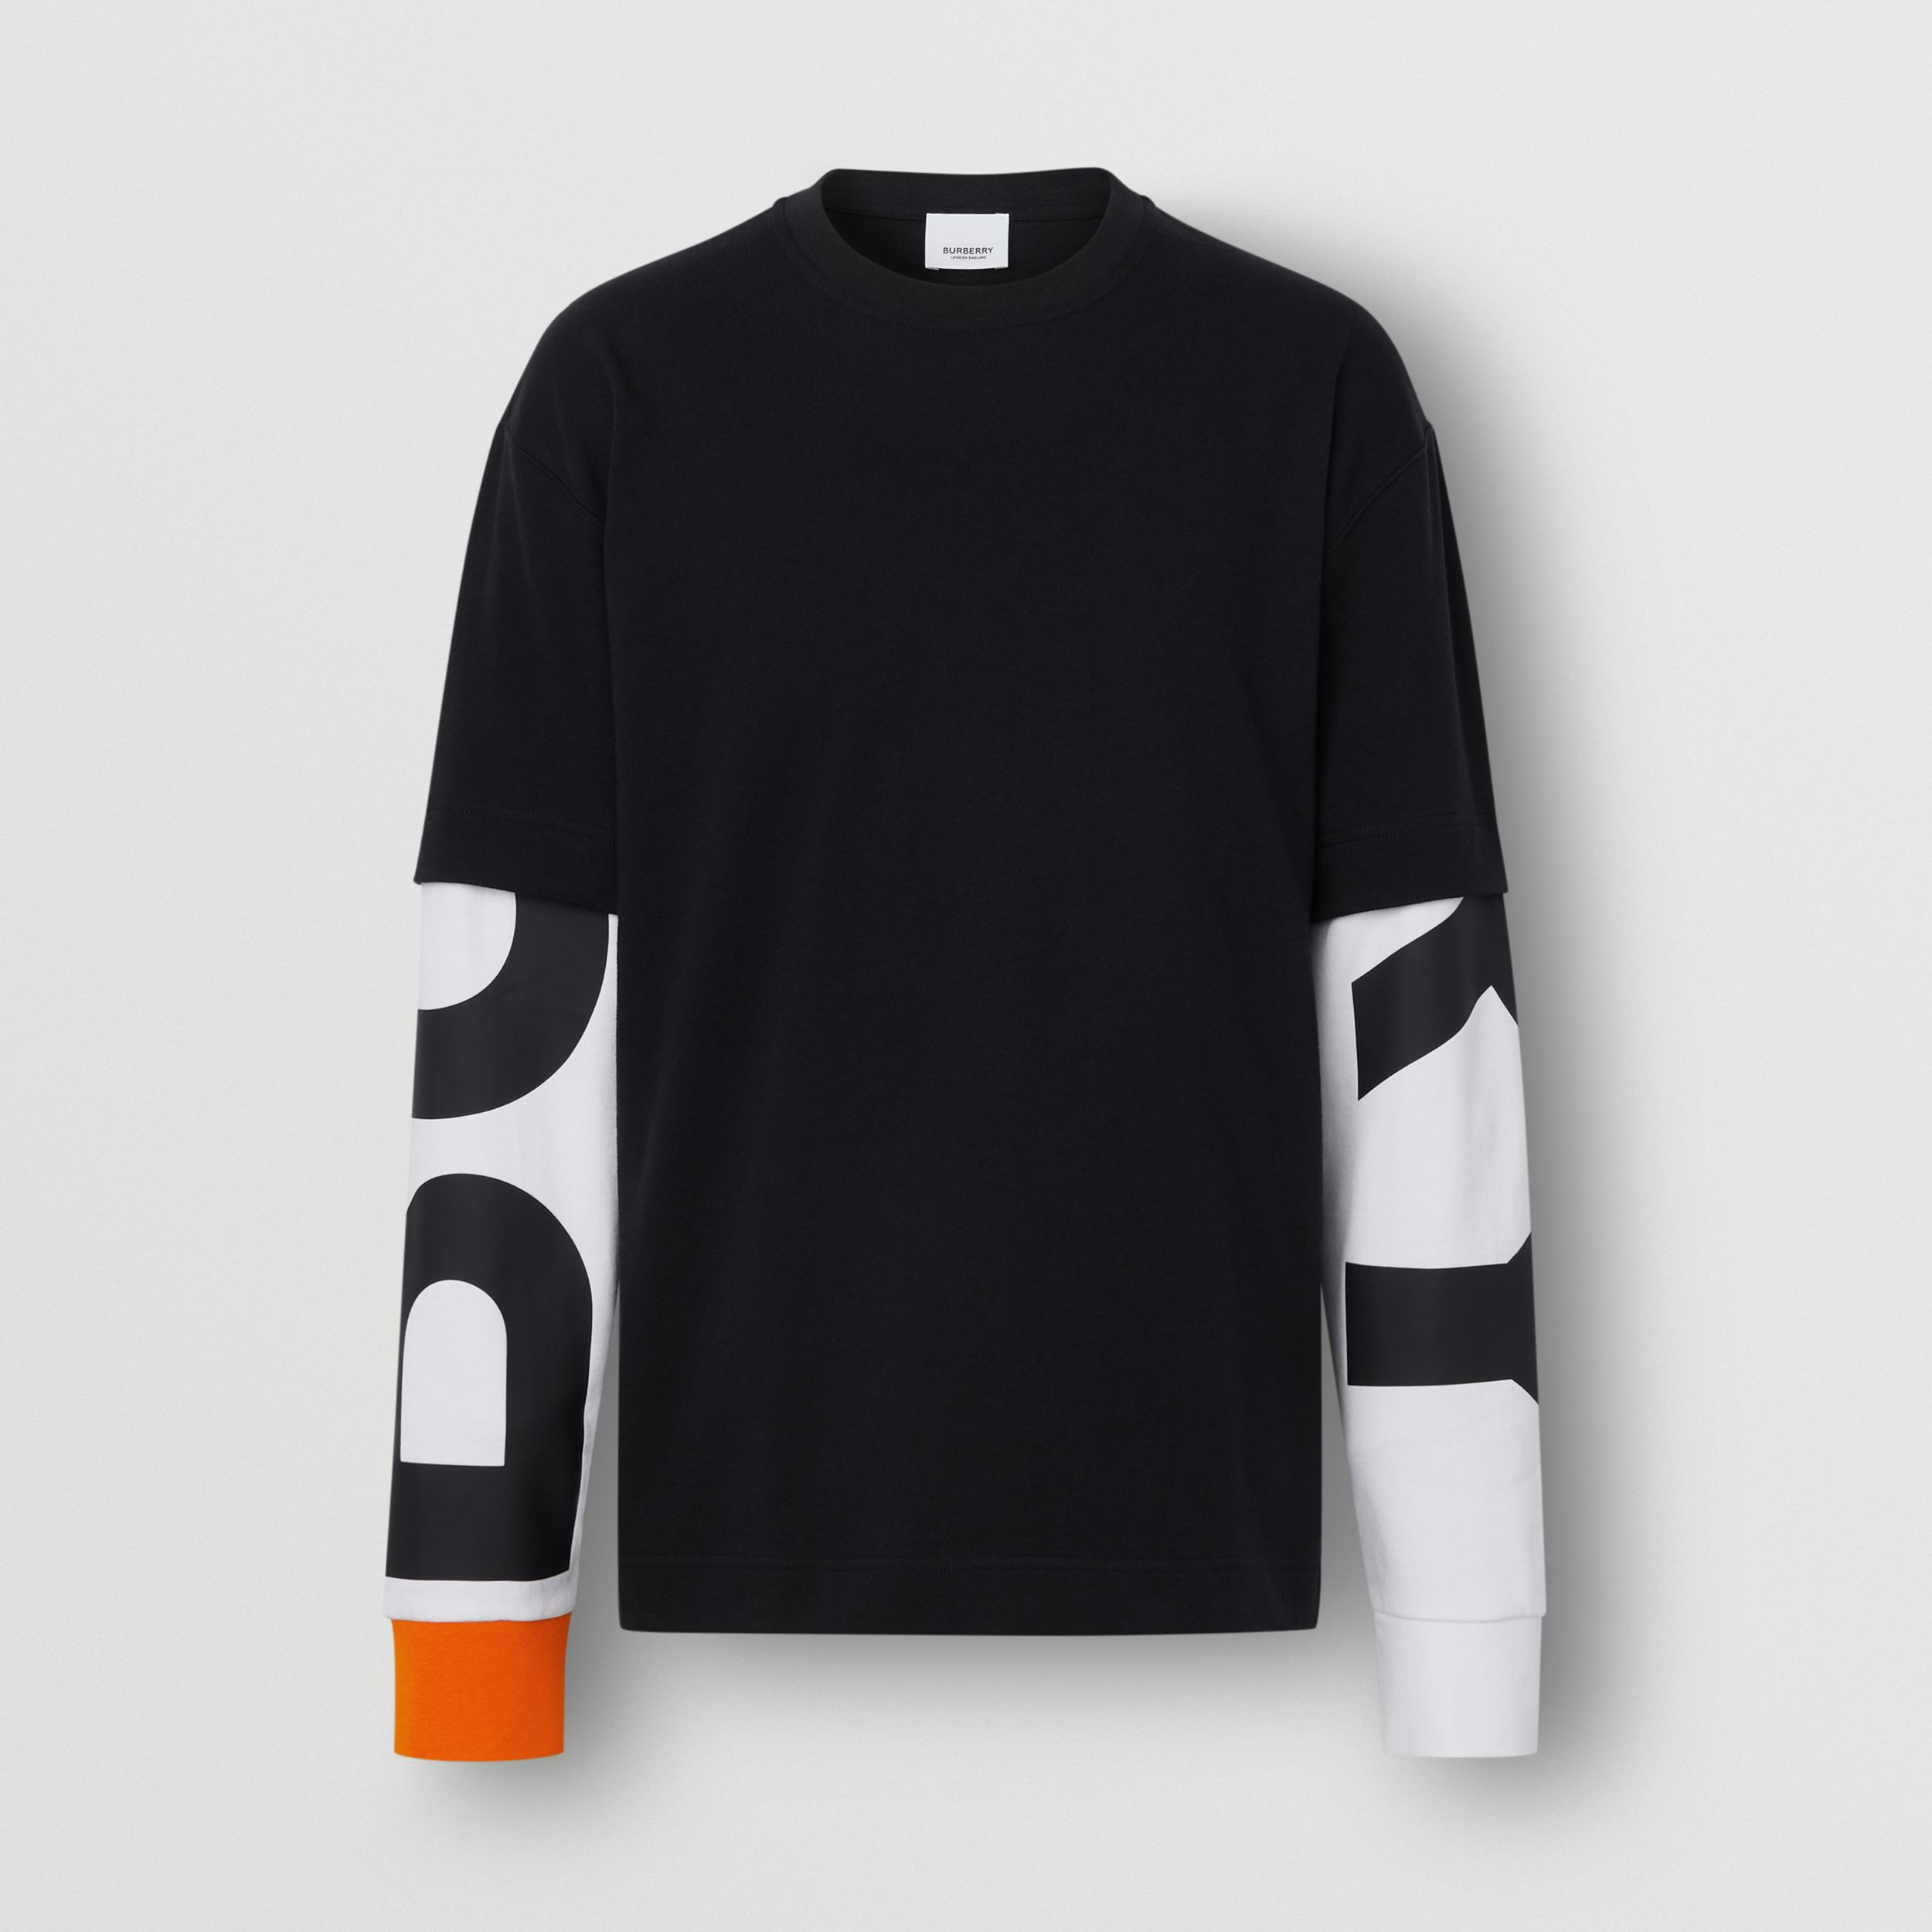 Logo Print Sleeve Cotton T-shirt in Black - Men | Burberry Canada - 4